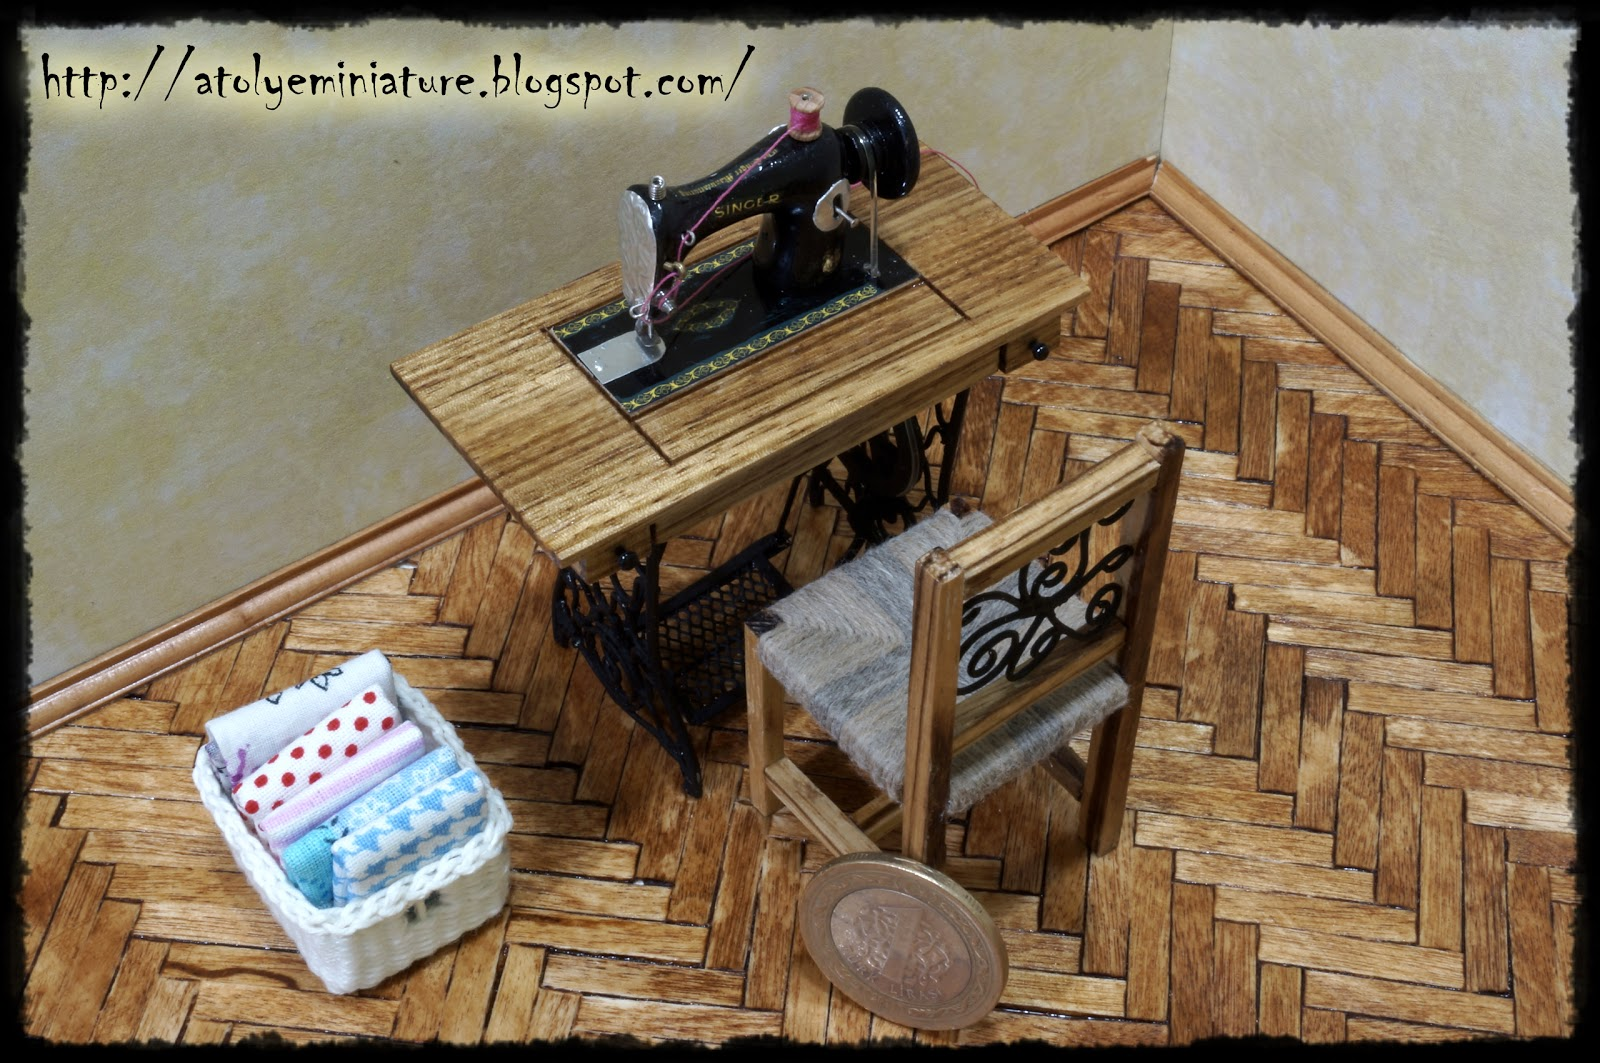 1:12 sewing machine